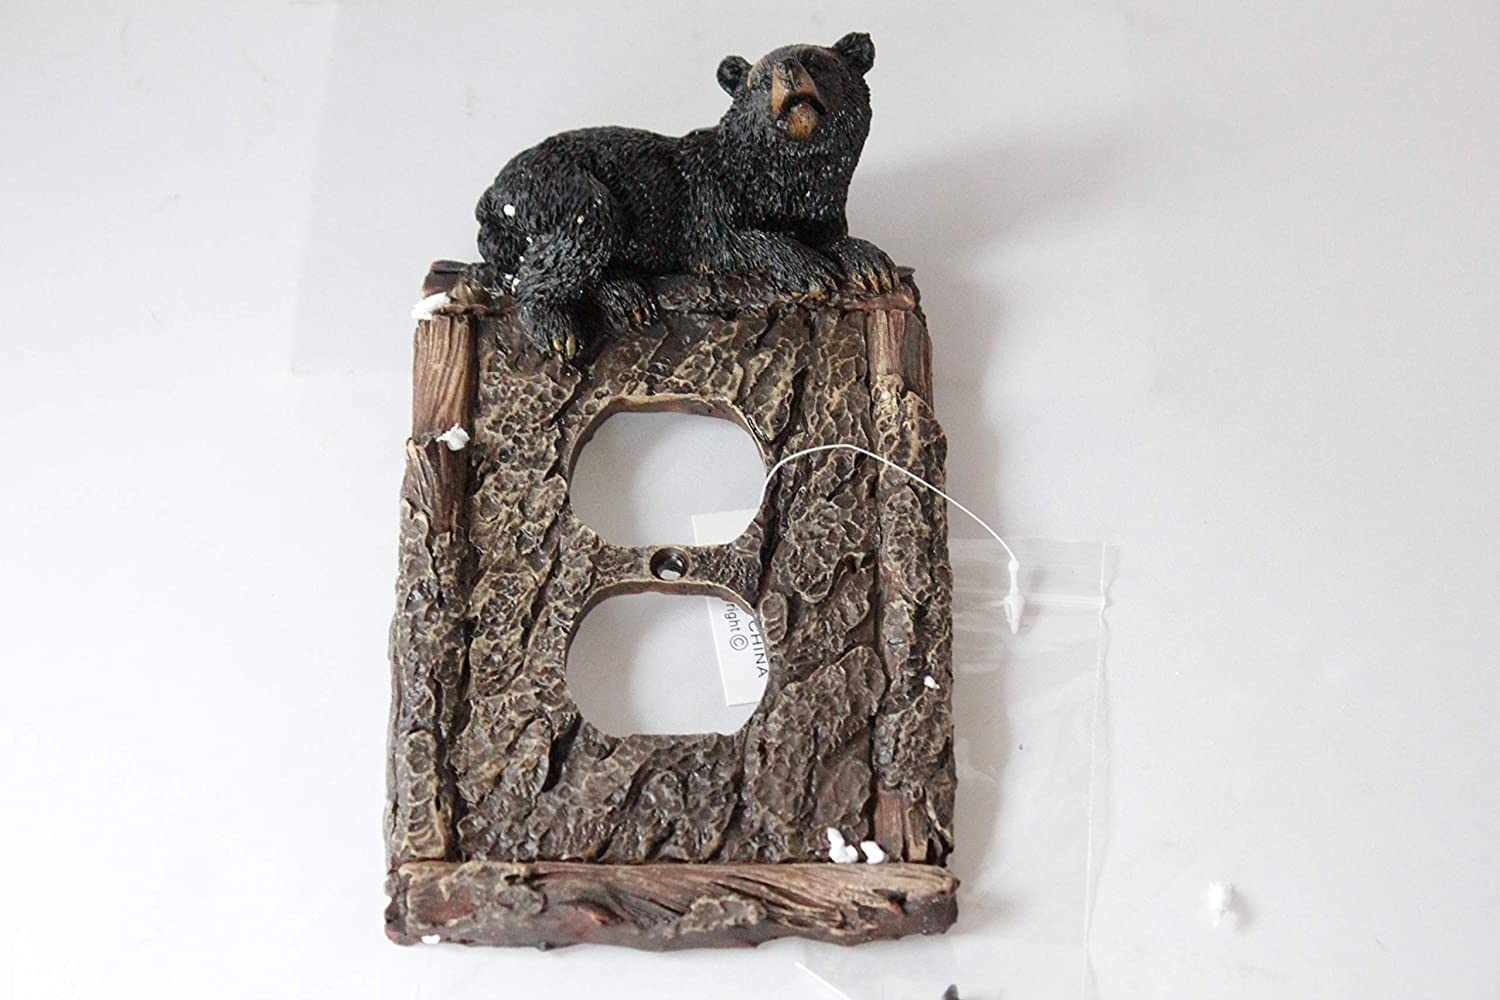 Black Bear Switch Plate Covers Electric Outlet Cover Faux Wood Look Cabin Decor (Electric Outlet)